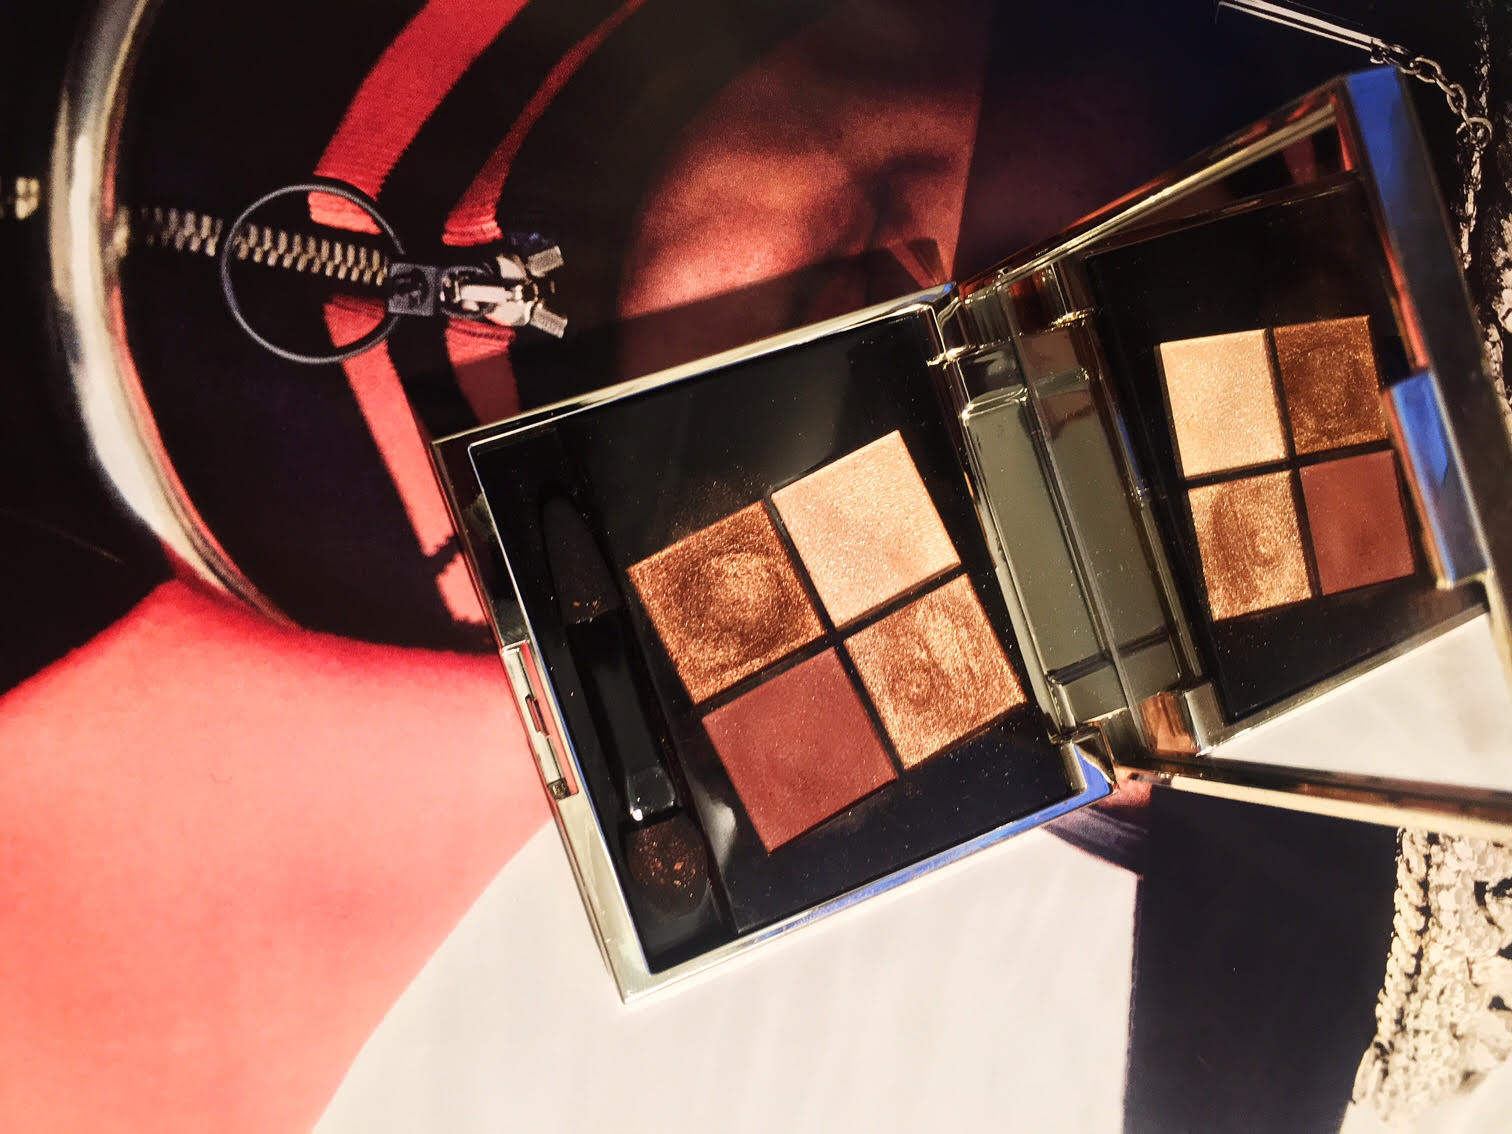 smith-and-cult-bronze-eyeshadow-new-review